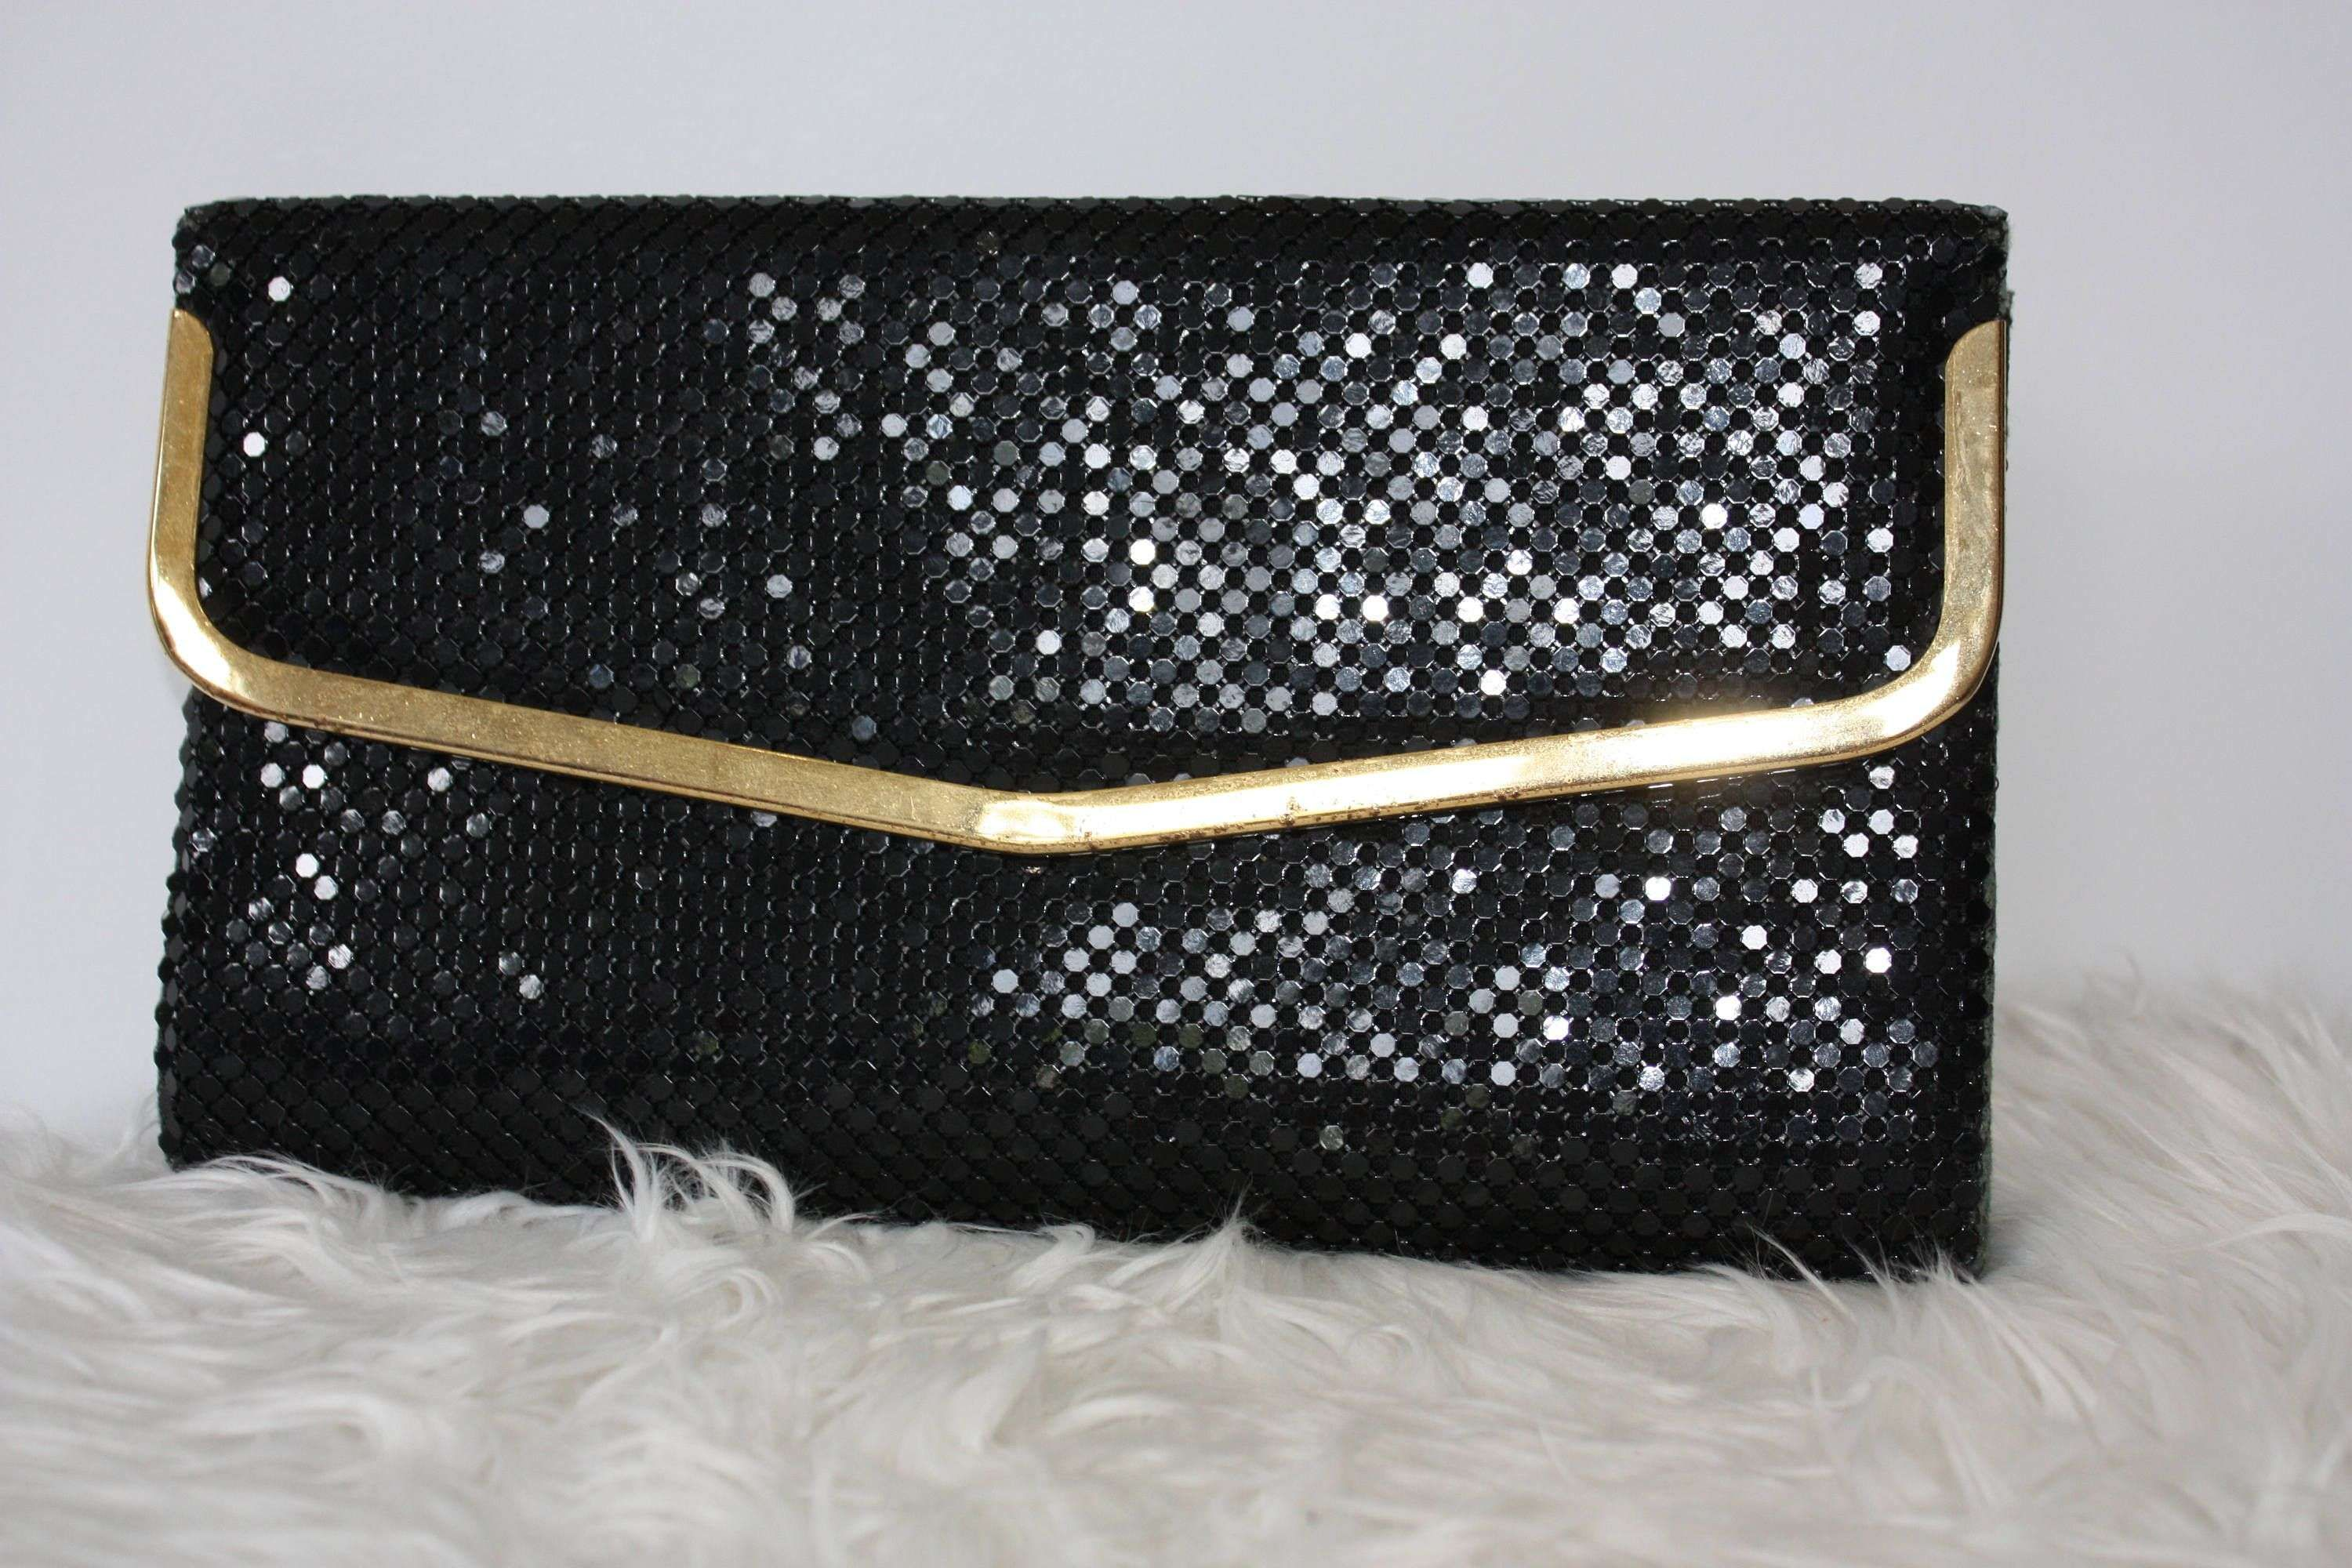 1e9542defba Awesome Black Leather Clutch Bag evening | DIY | Clutch bag, Leather ...